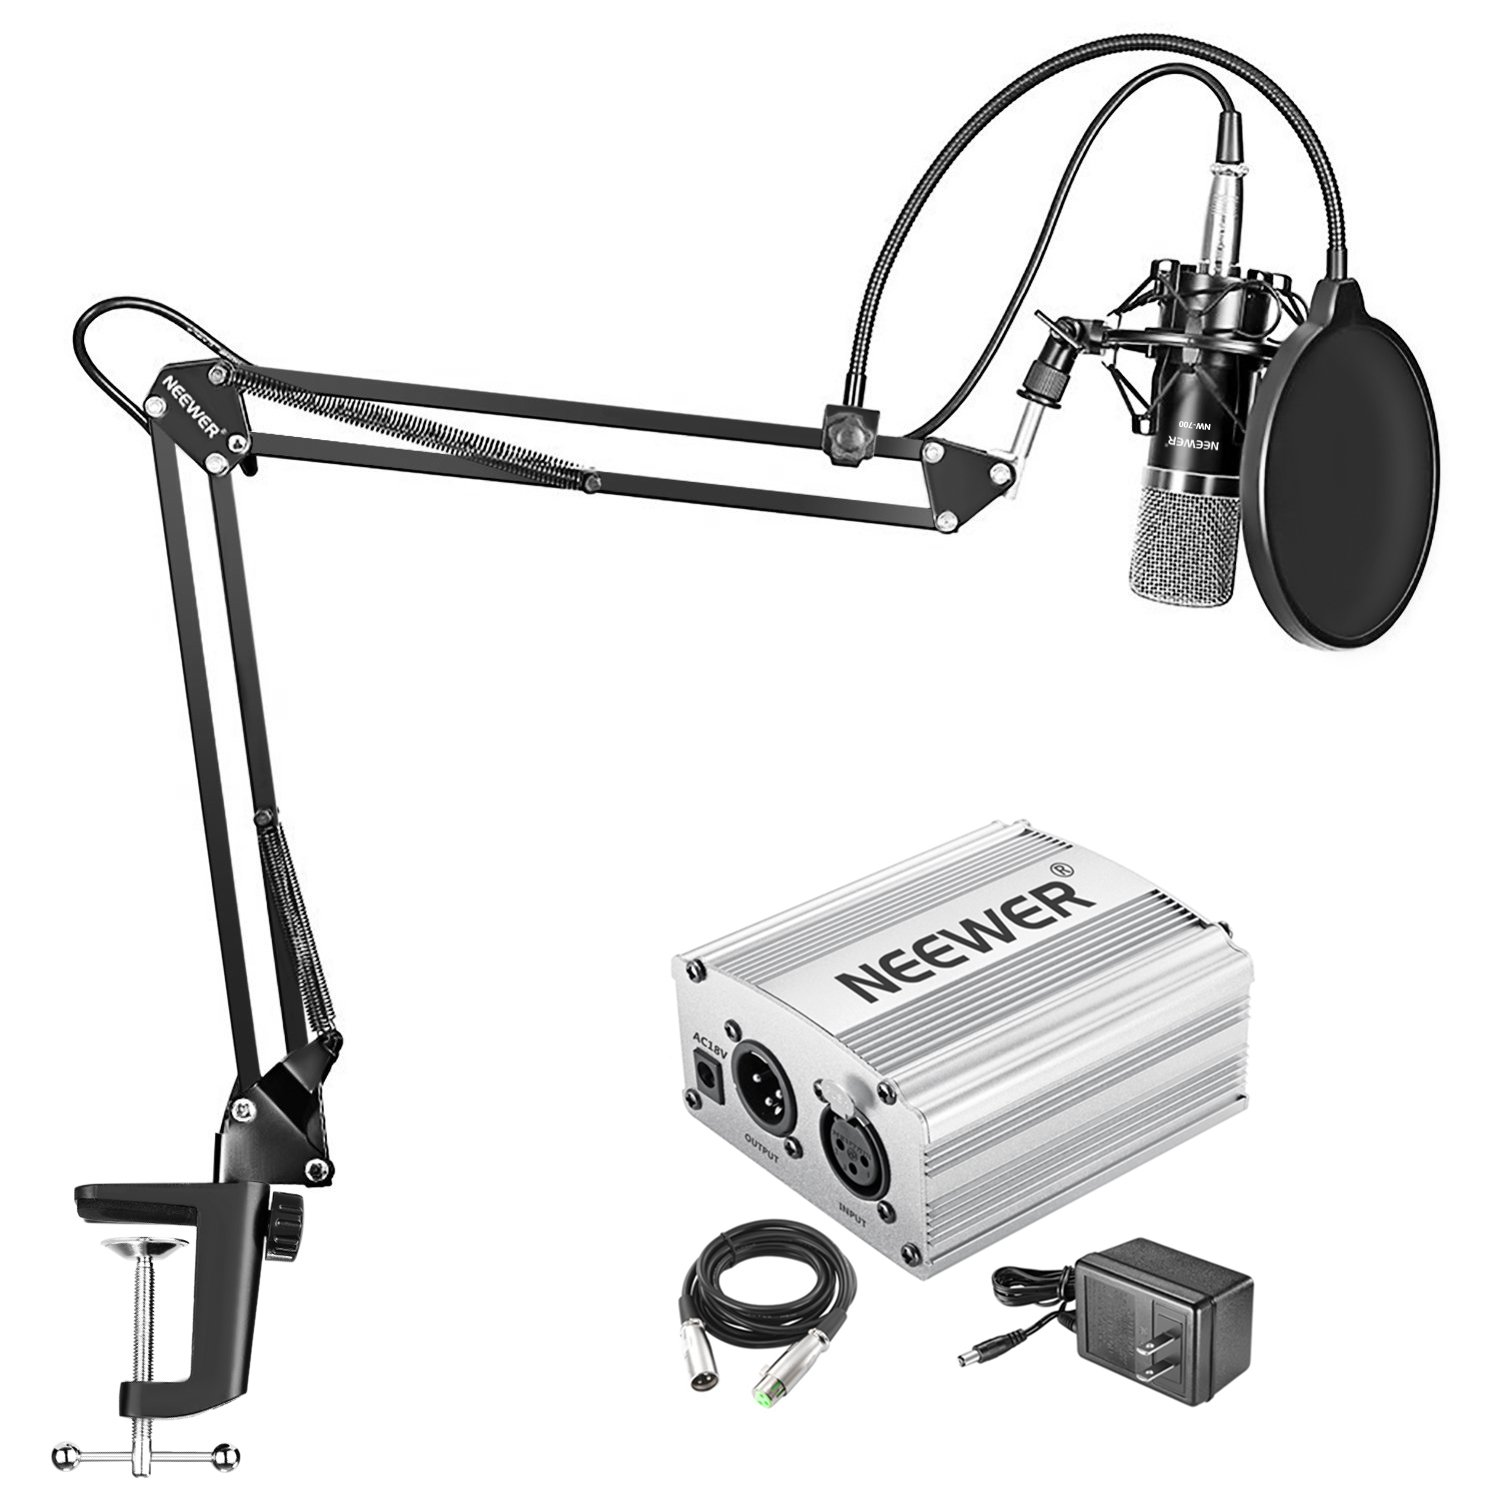 Neewer NW-700 Condenser Microphone Kit - Mic and 48V Phantom Power Supply(Silver), NW-35 Boom Scissor Arm Stand with Shock Mount and Pop Filter(Black), XLR Male to Female Cable for Home Studio Recordin 40090971@@os1